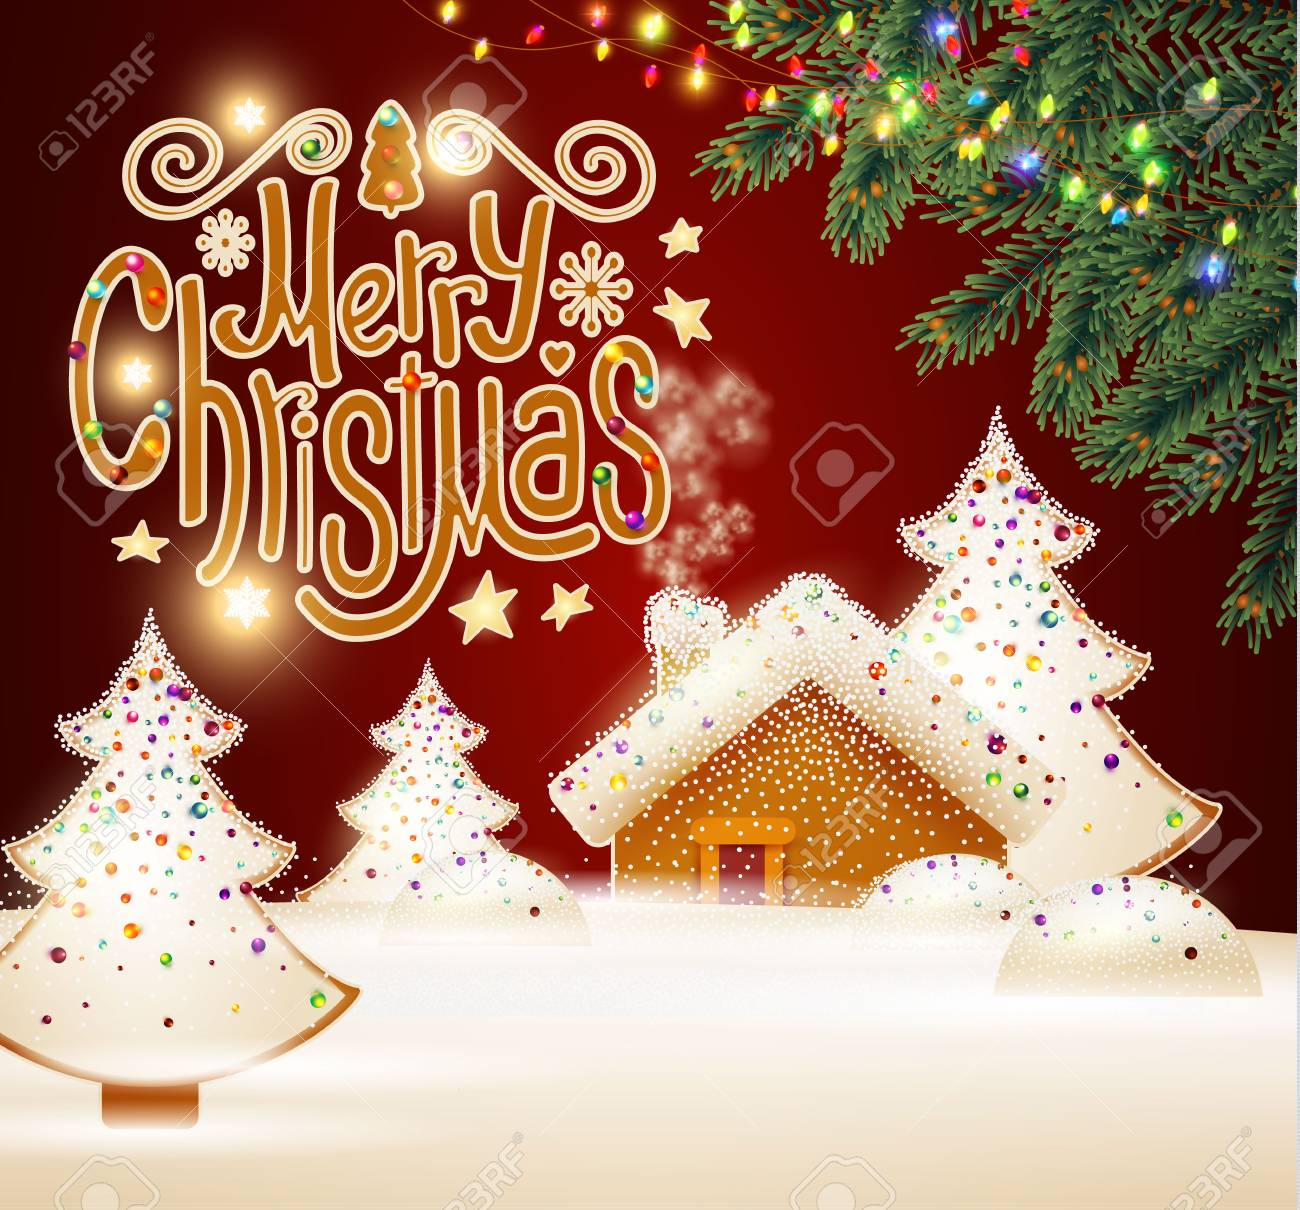 Christmas Backgrounds Cute.Merry Christmas Cute Background With Gingerbread House Christmas